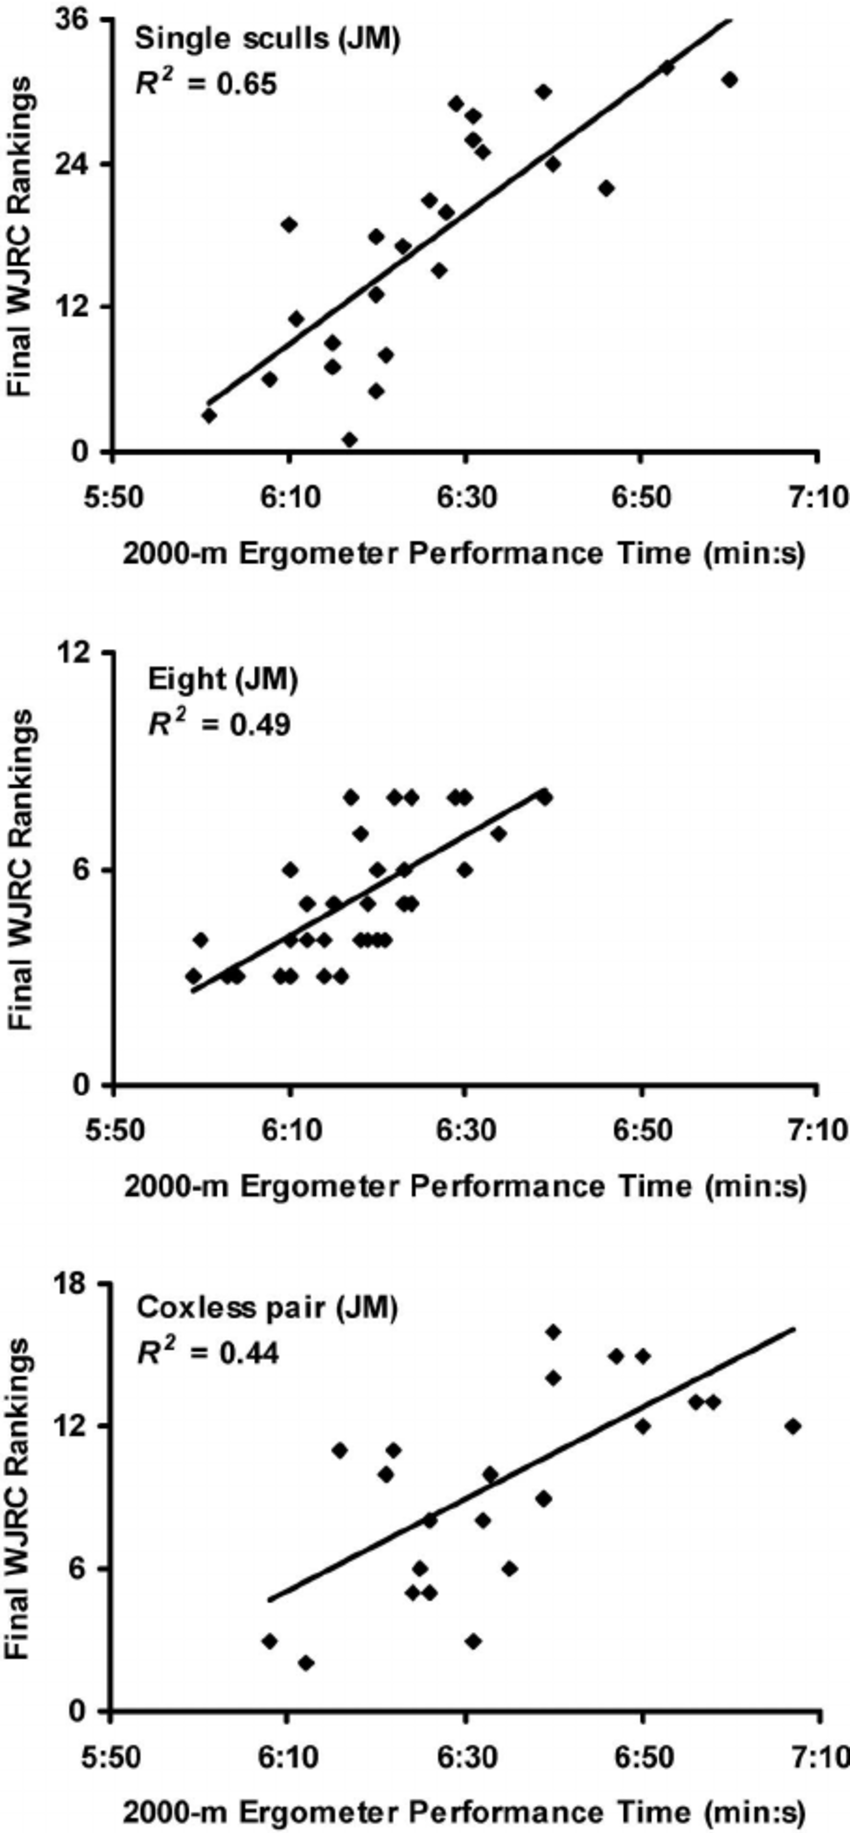 medium resolution of scatterplots with regression lines for three junior men s jm events in which the strongest correlations between 2000 m rowing ergometer performance times